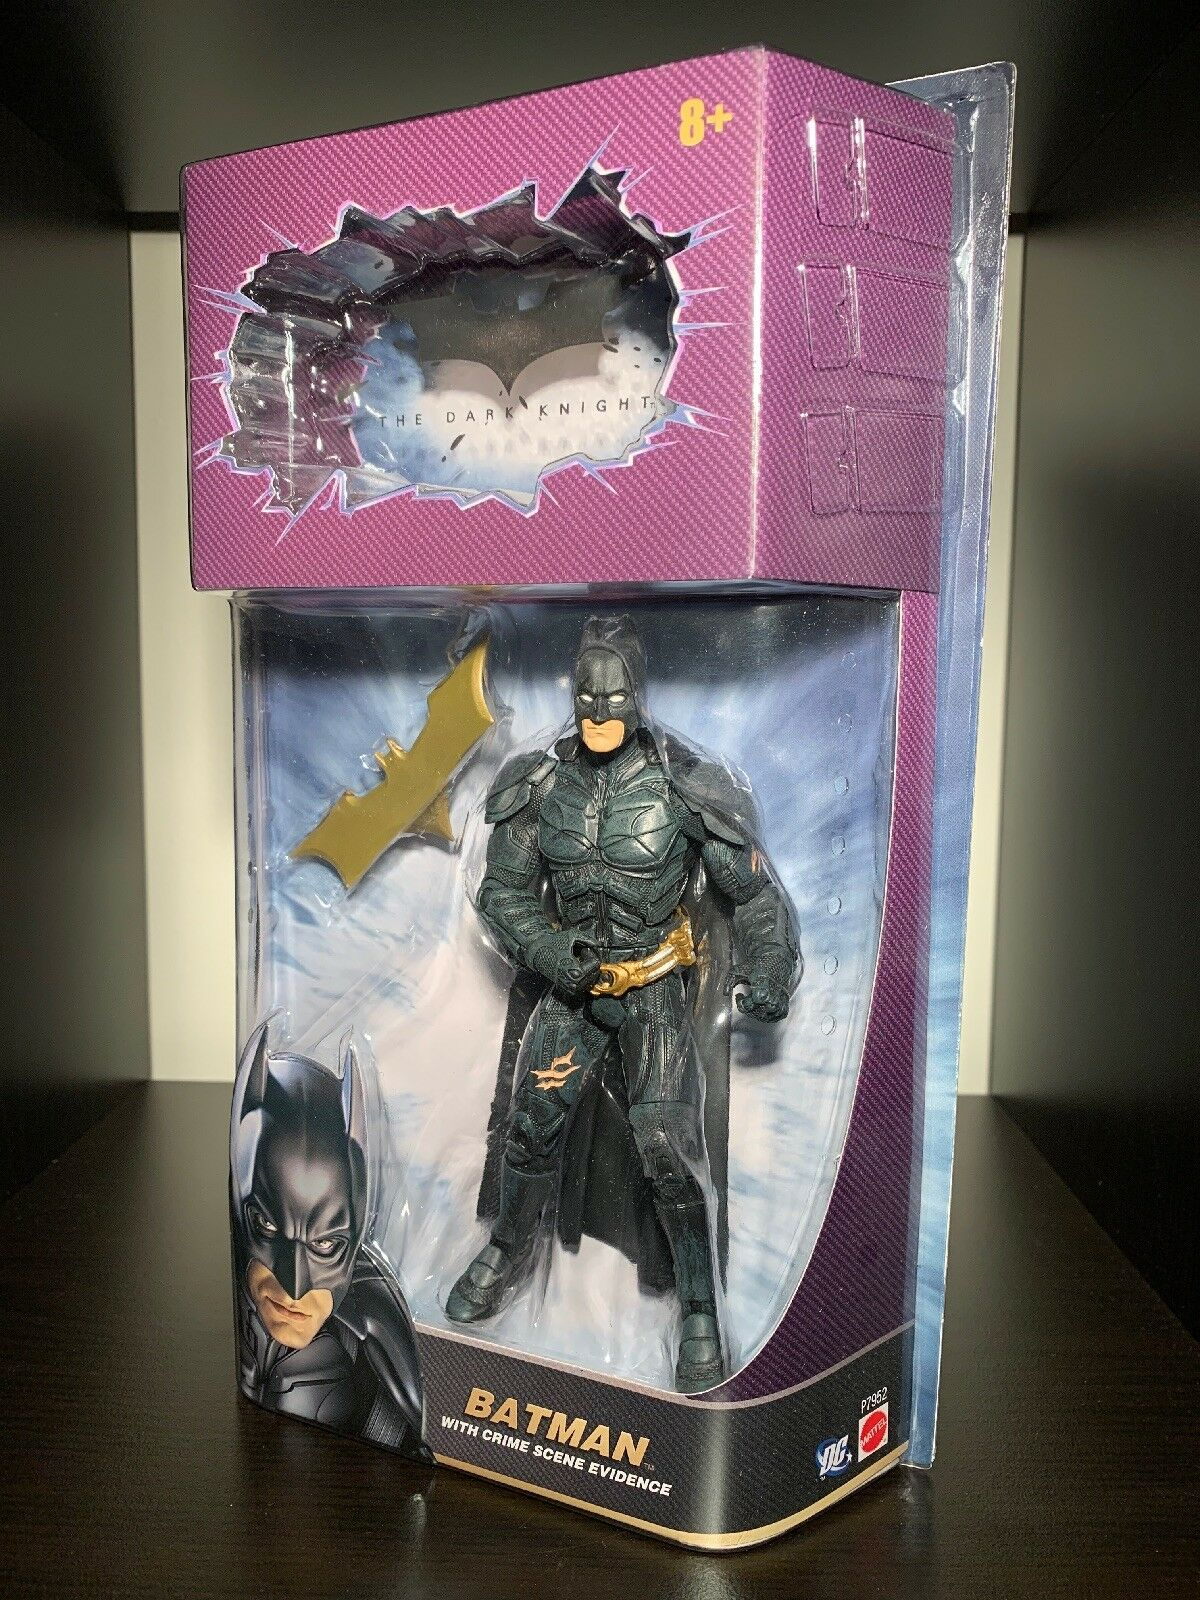 Bathomme Night  Vision bataille Dark Knight Mattel Movie Masters Matty Exclusive  qualité pas cher et top